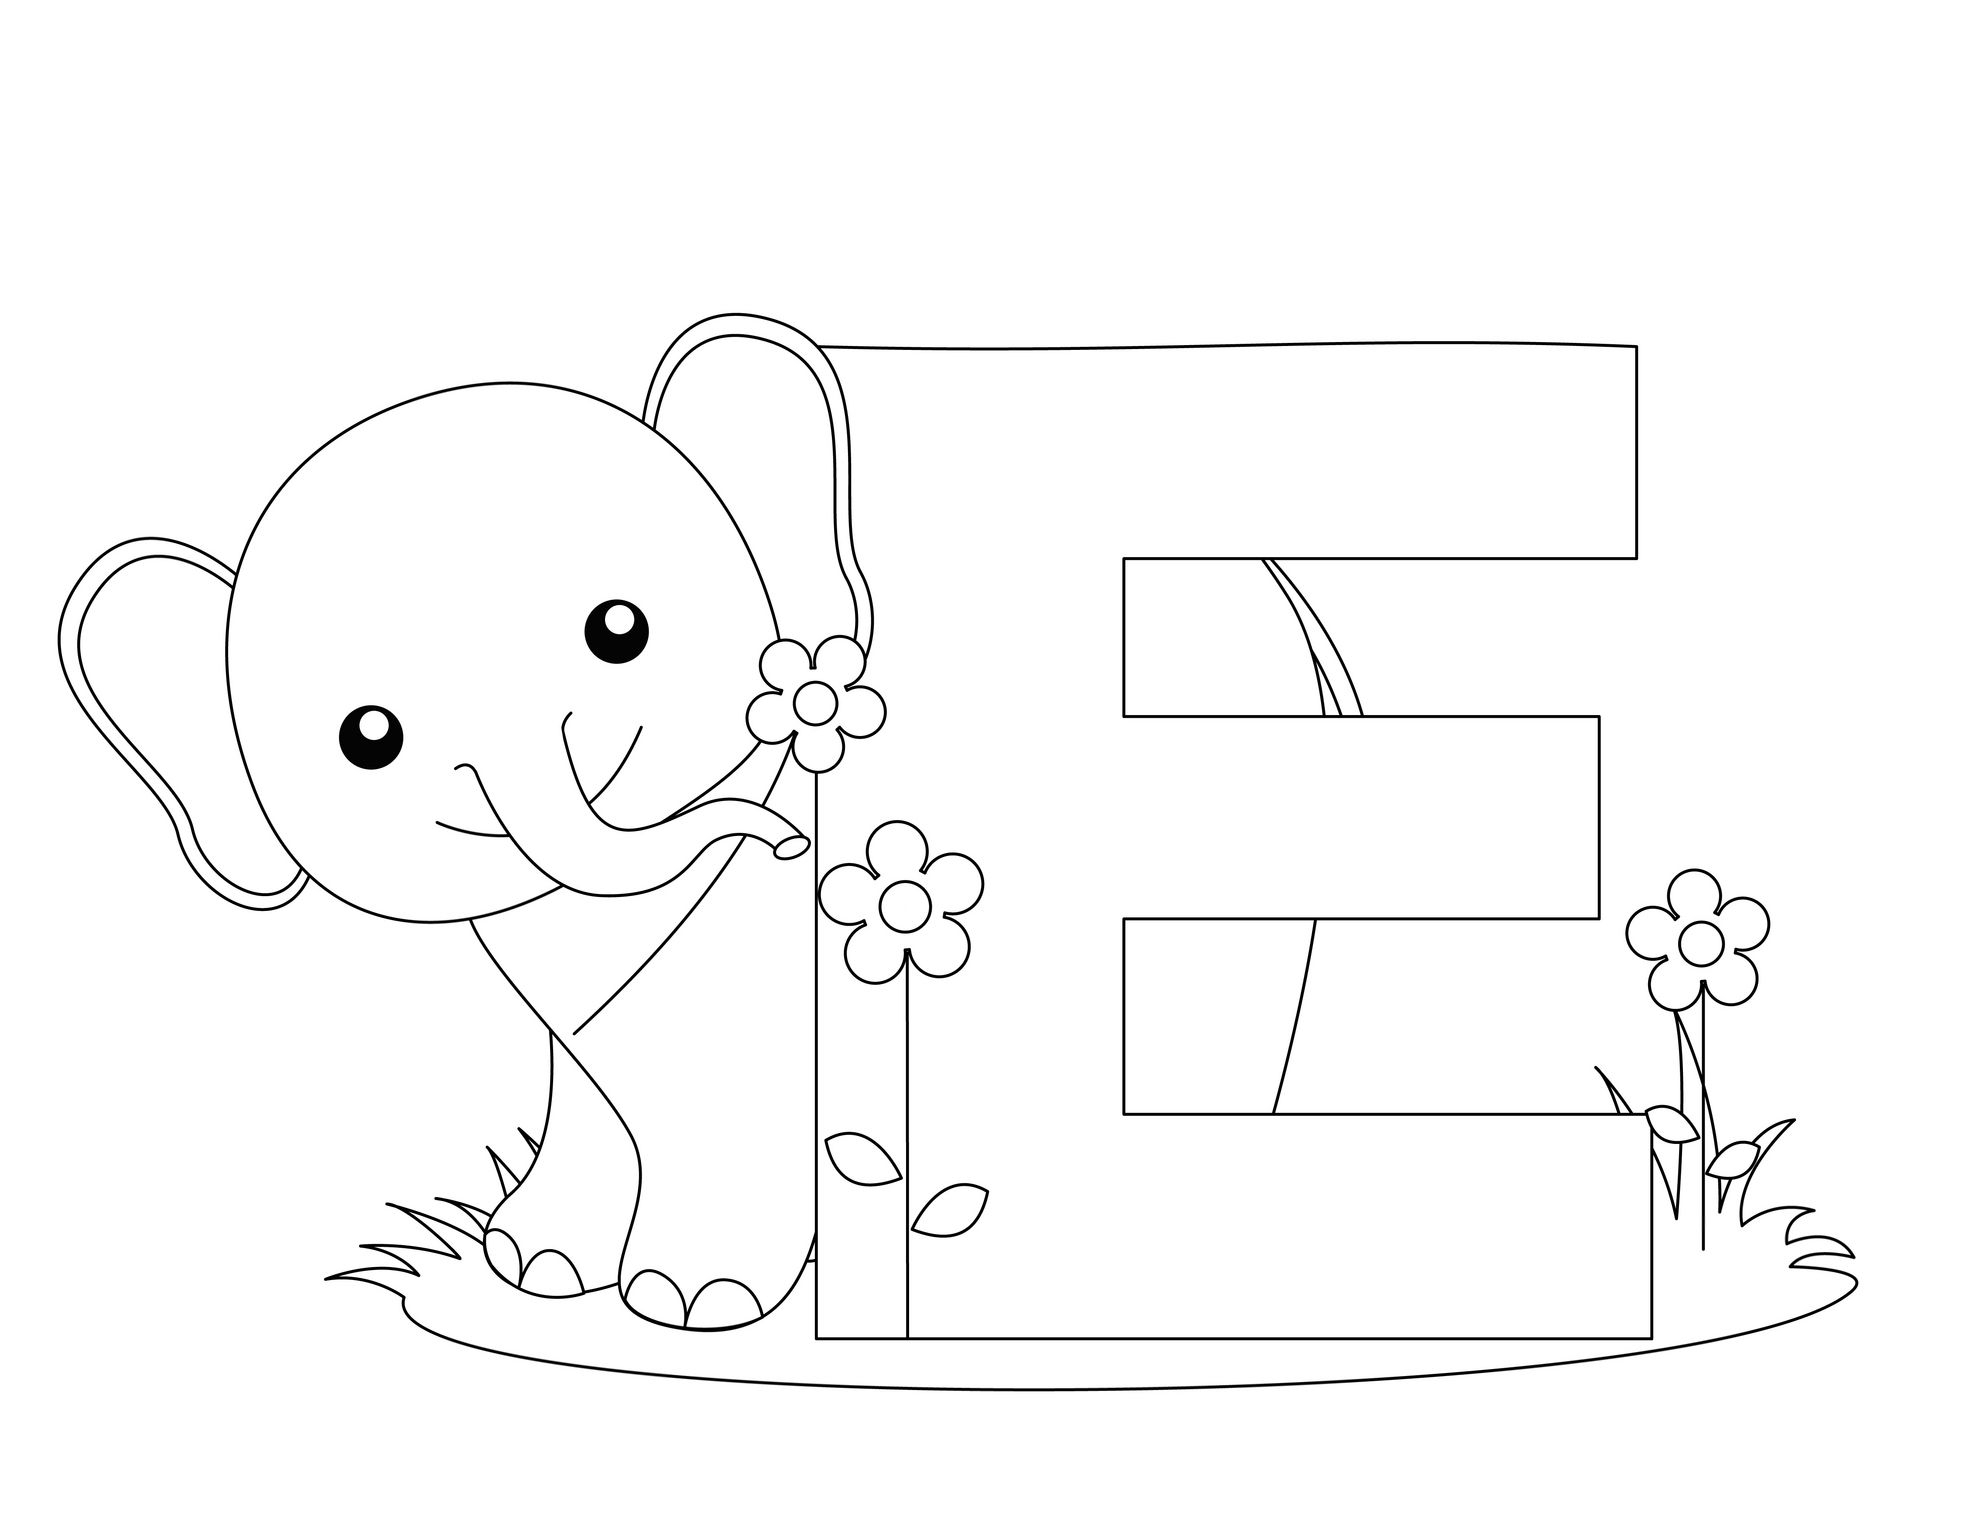 Letter E Coloring Pages | Abc Coloring Pages, Elephant inside Letter E Worksheets Coloring